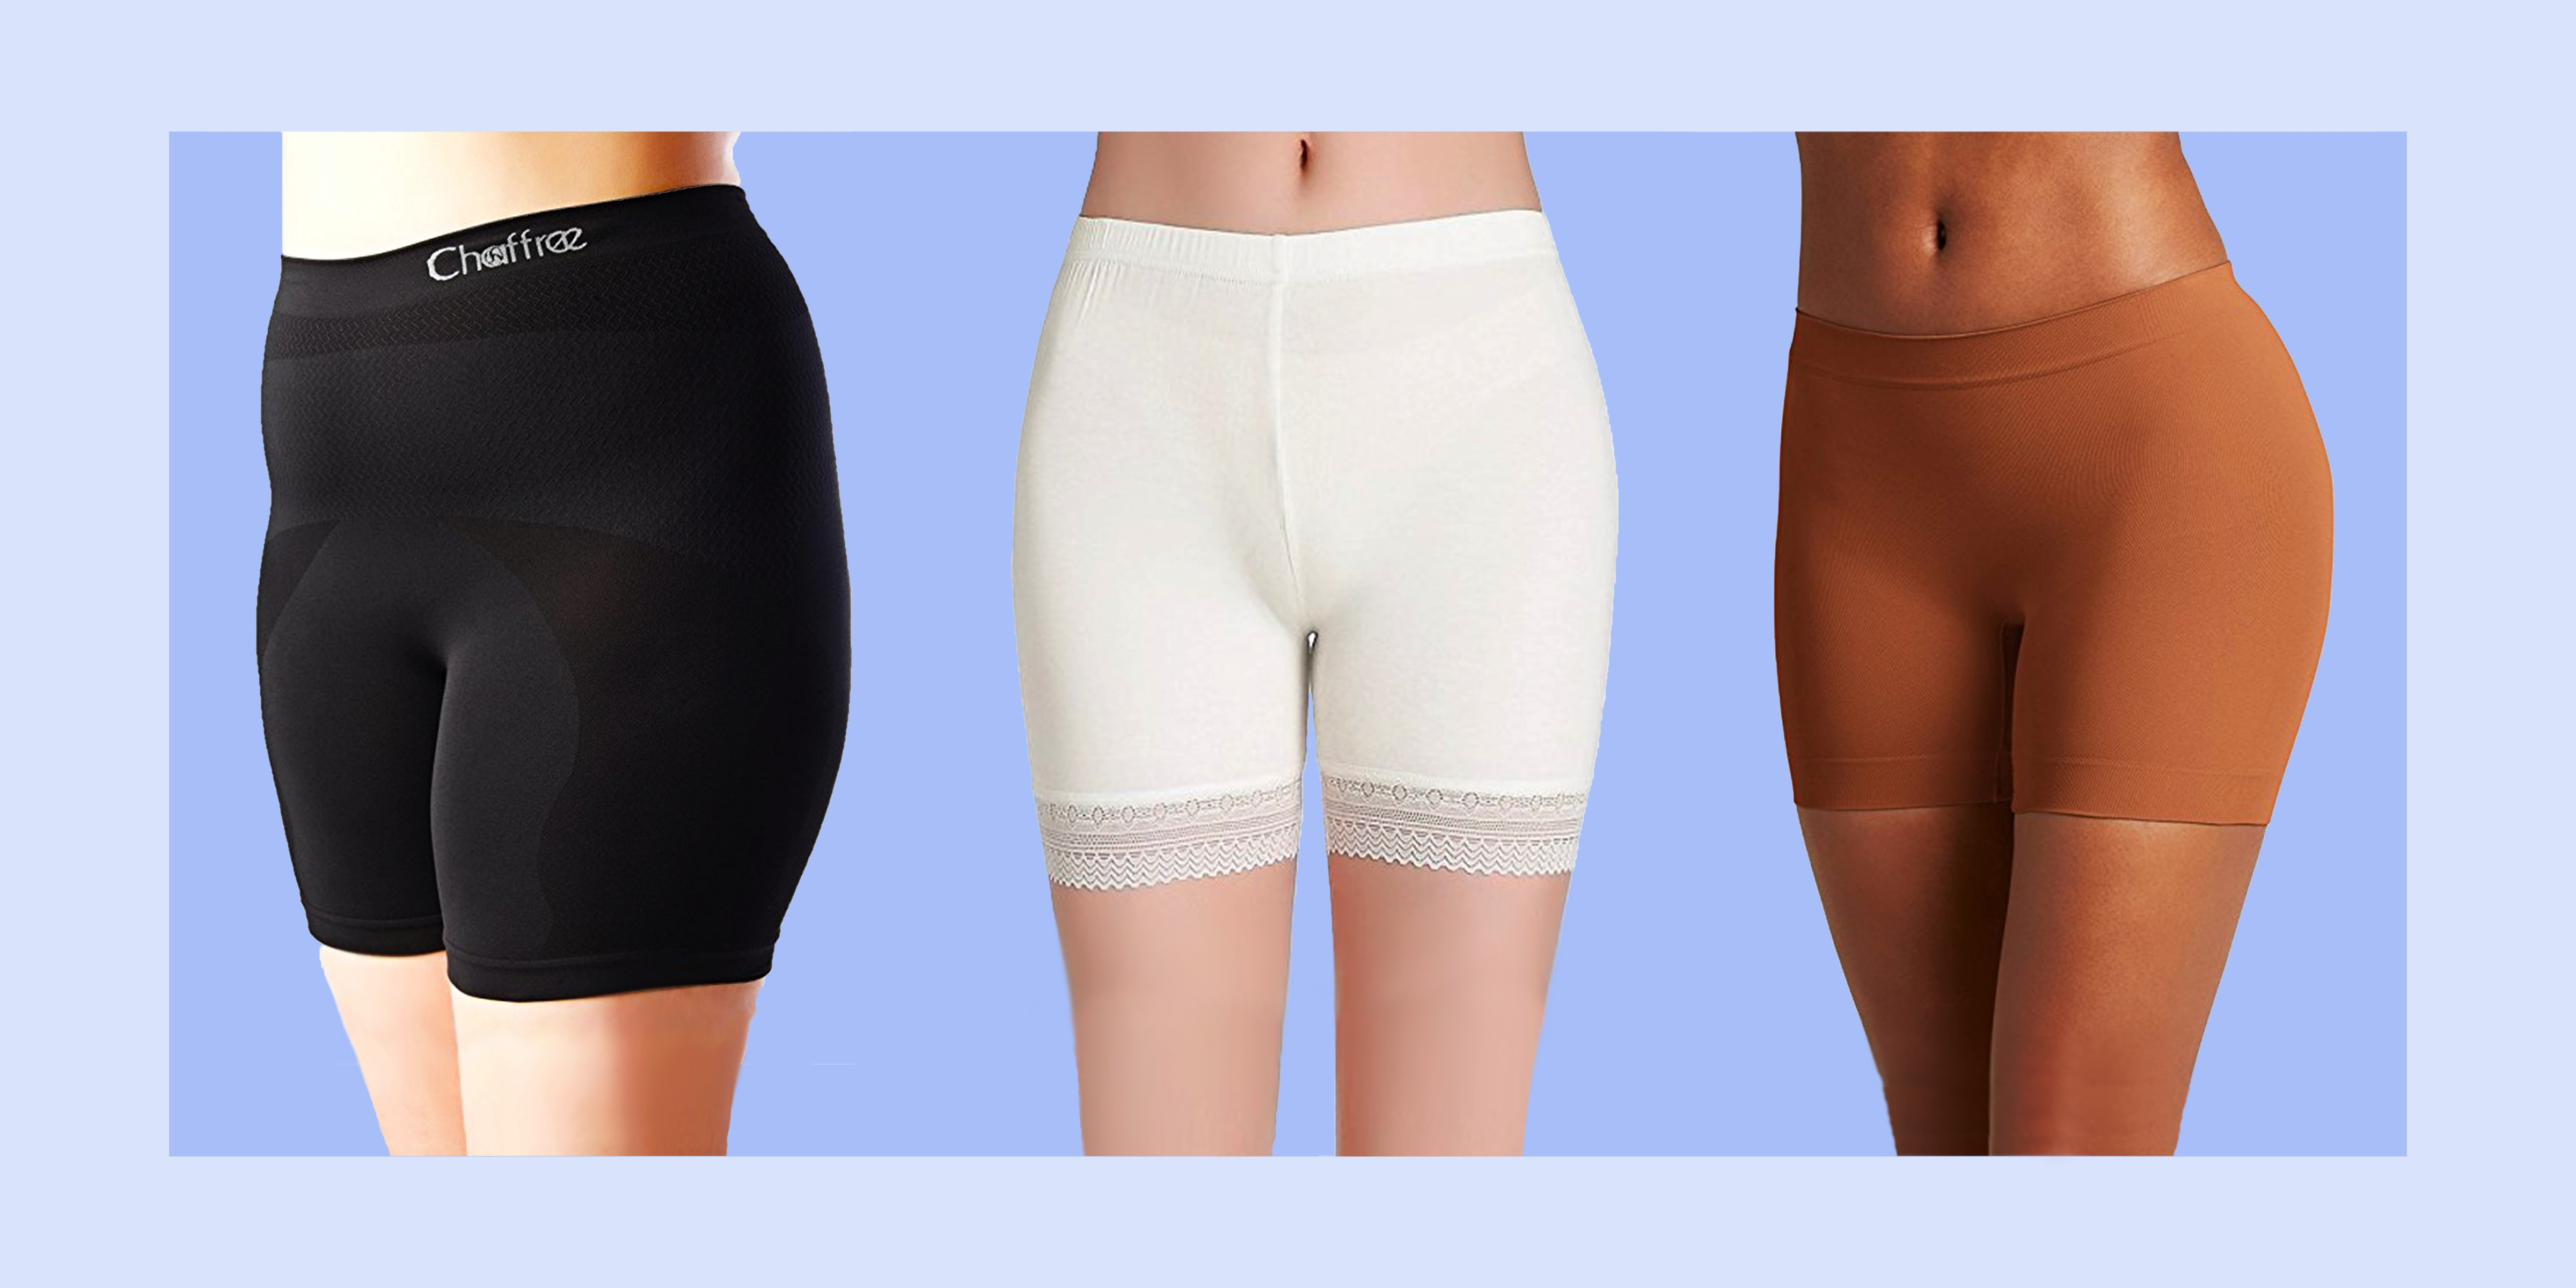 Seamless Gym Underwear Knicker Briefs Pants Active Wear Running Nude White Black